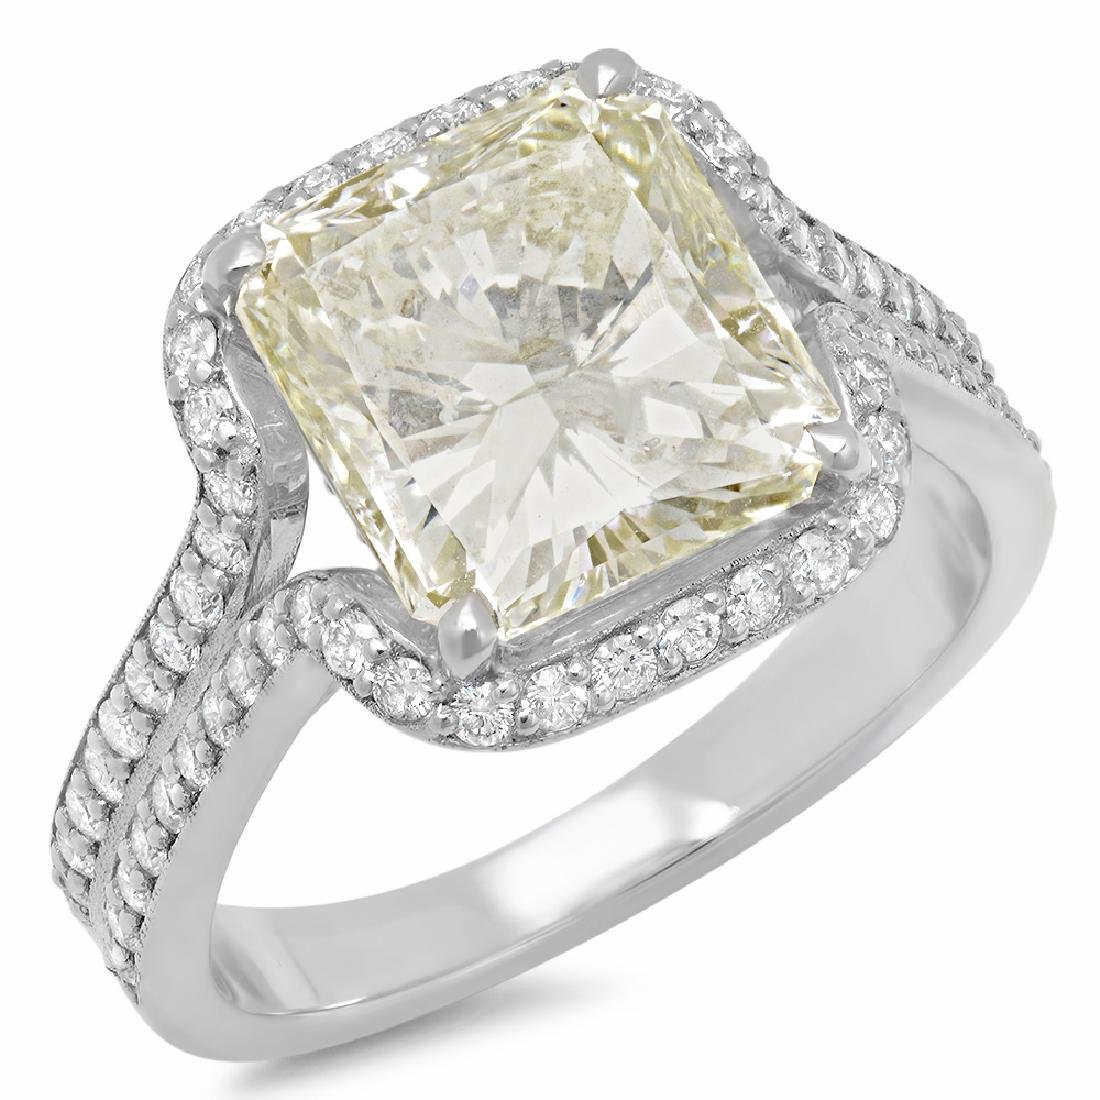 ITEM#: WR198 // WHITE DIAMONDS: Diamonds: 84 // Diamond